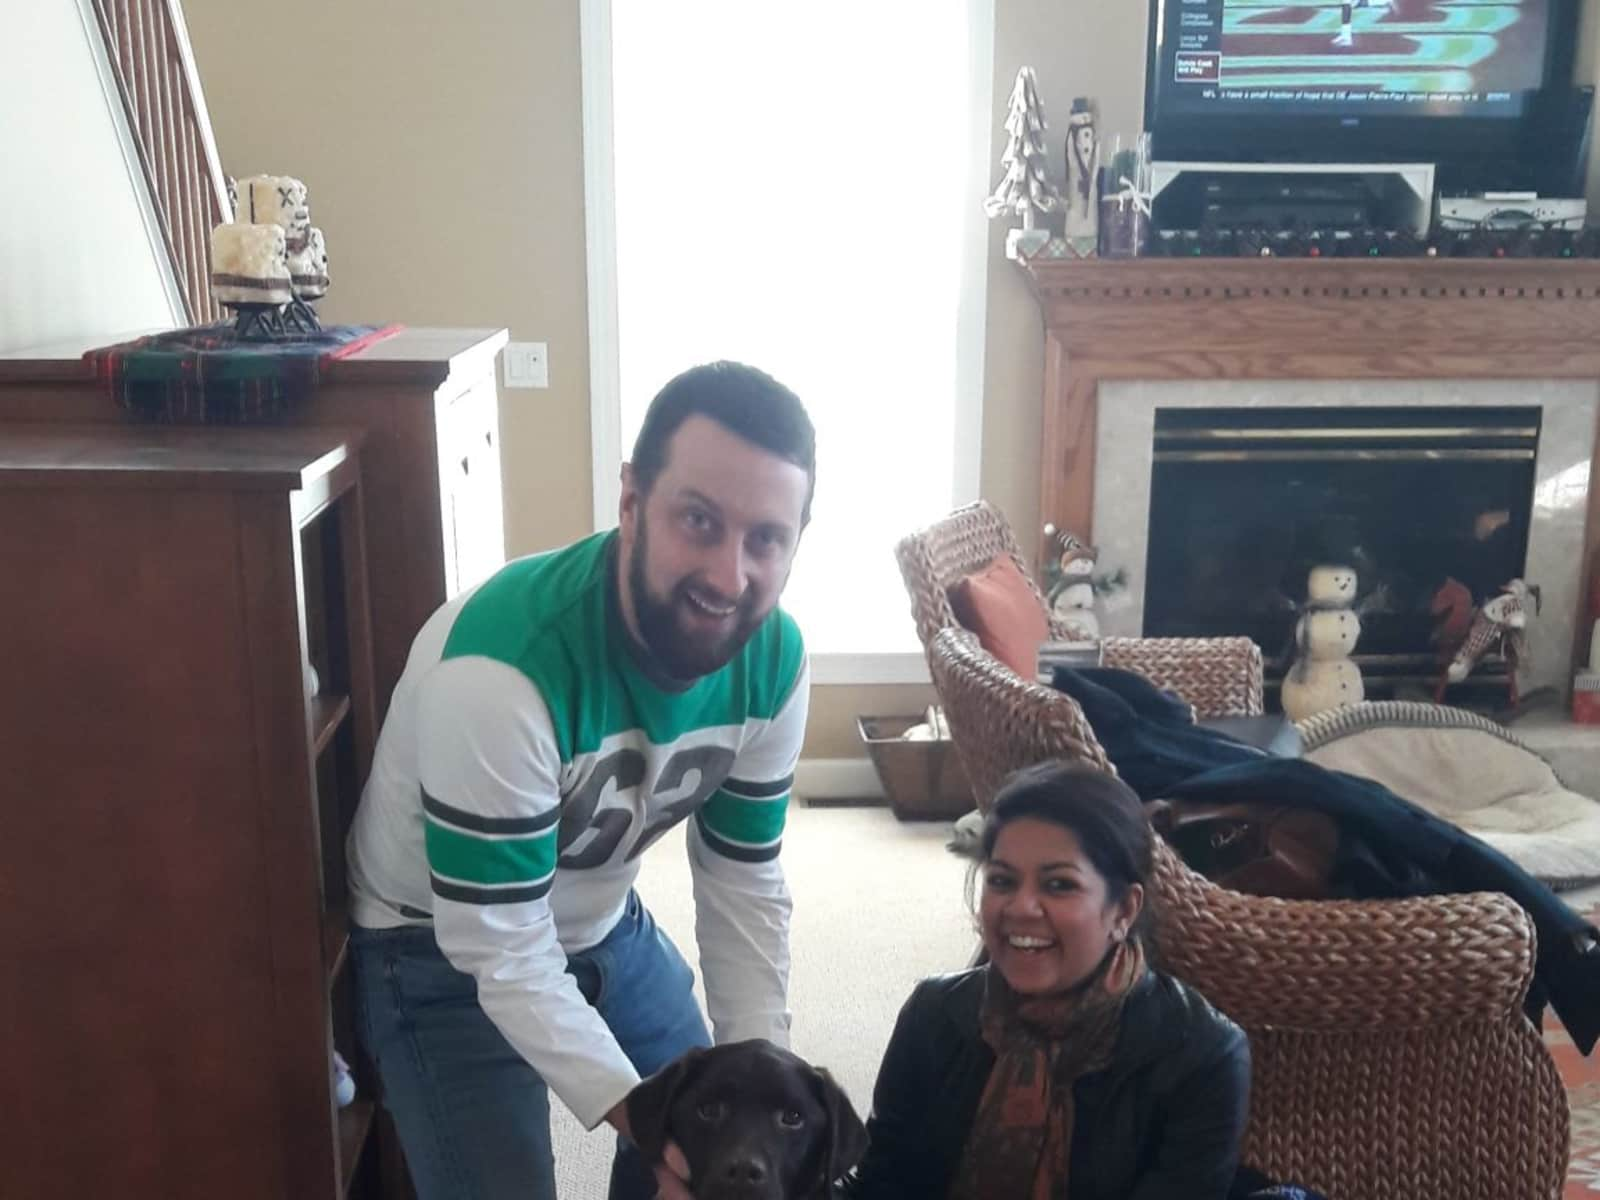 Nadia & Eoin from Flemington, New Jersey, United States